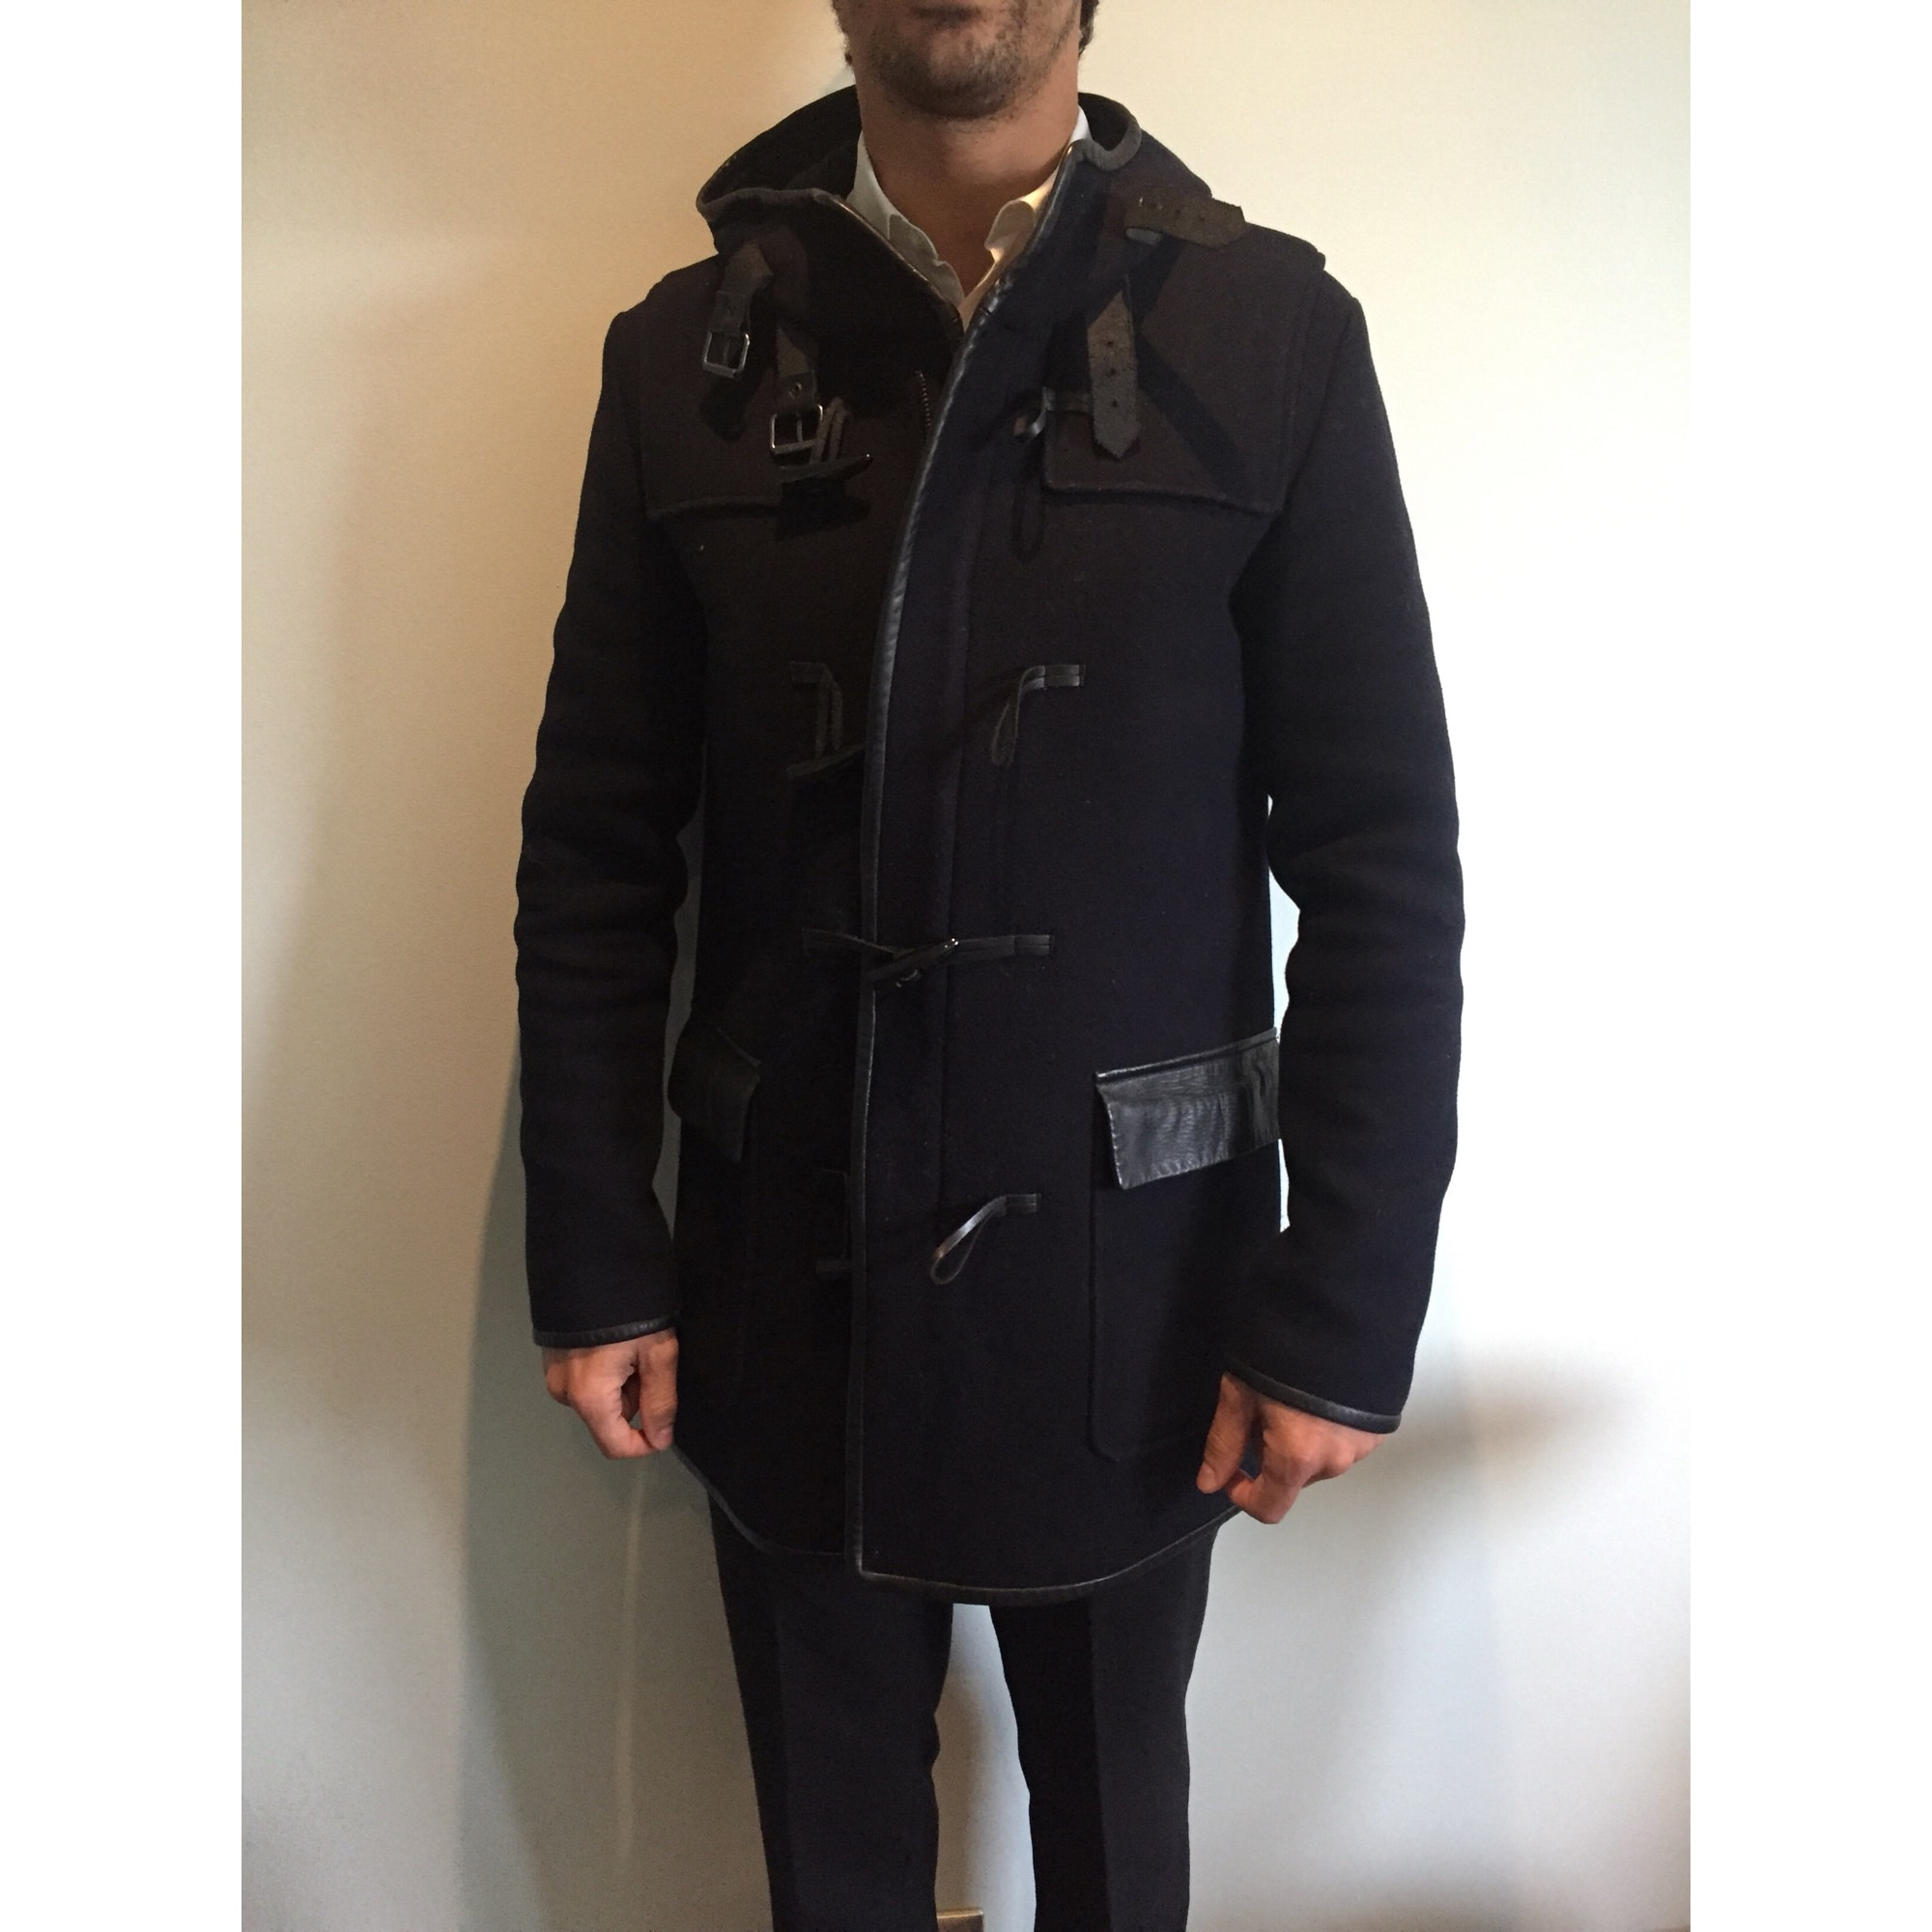 manteau the kooples homme occasion,duffle coat the kooples